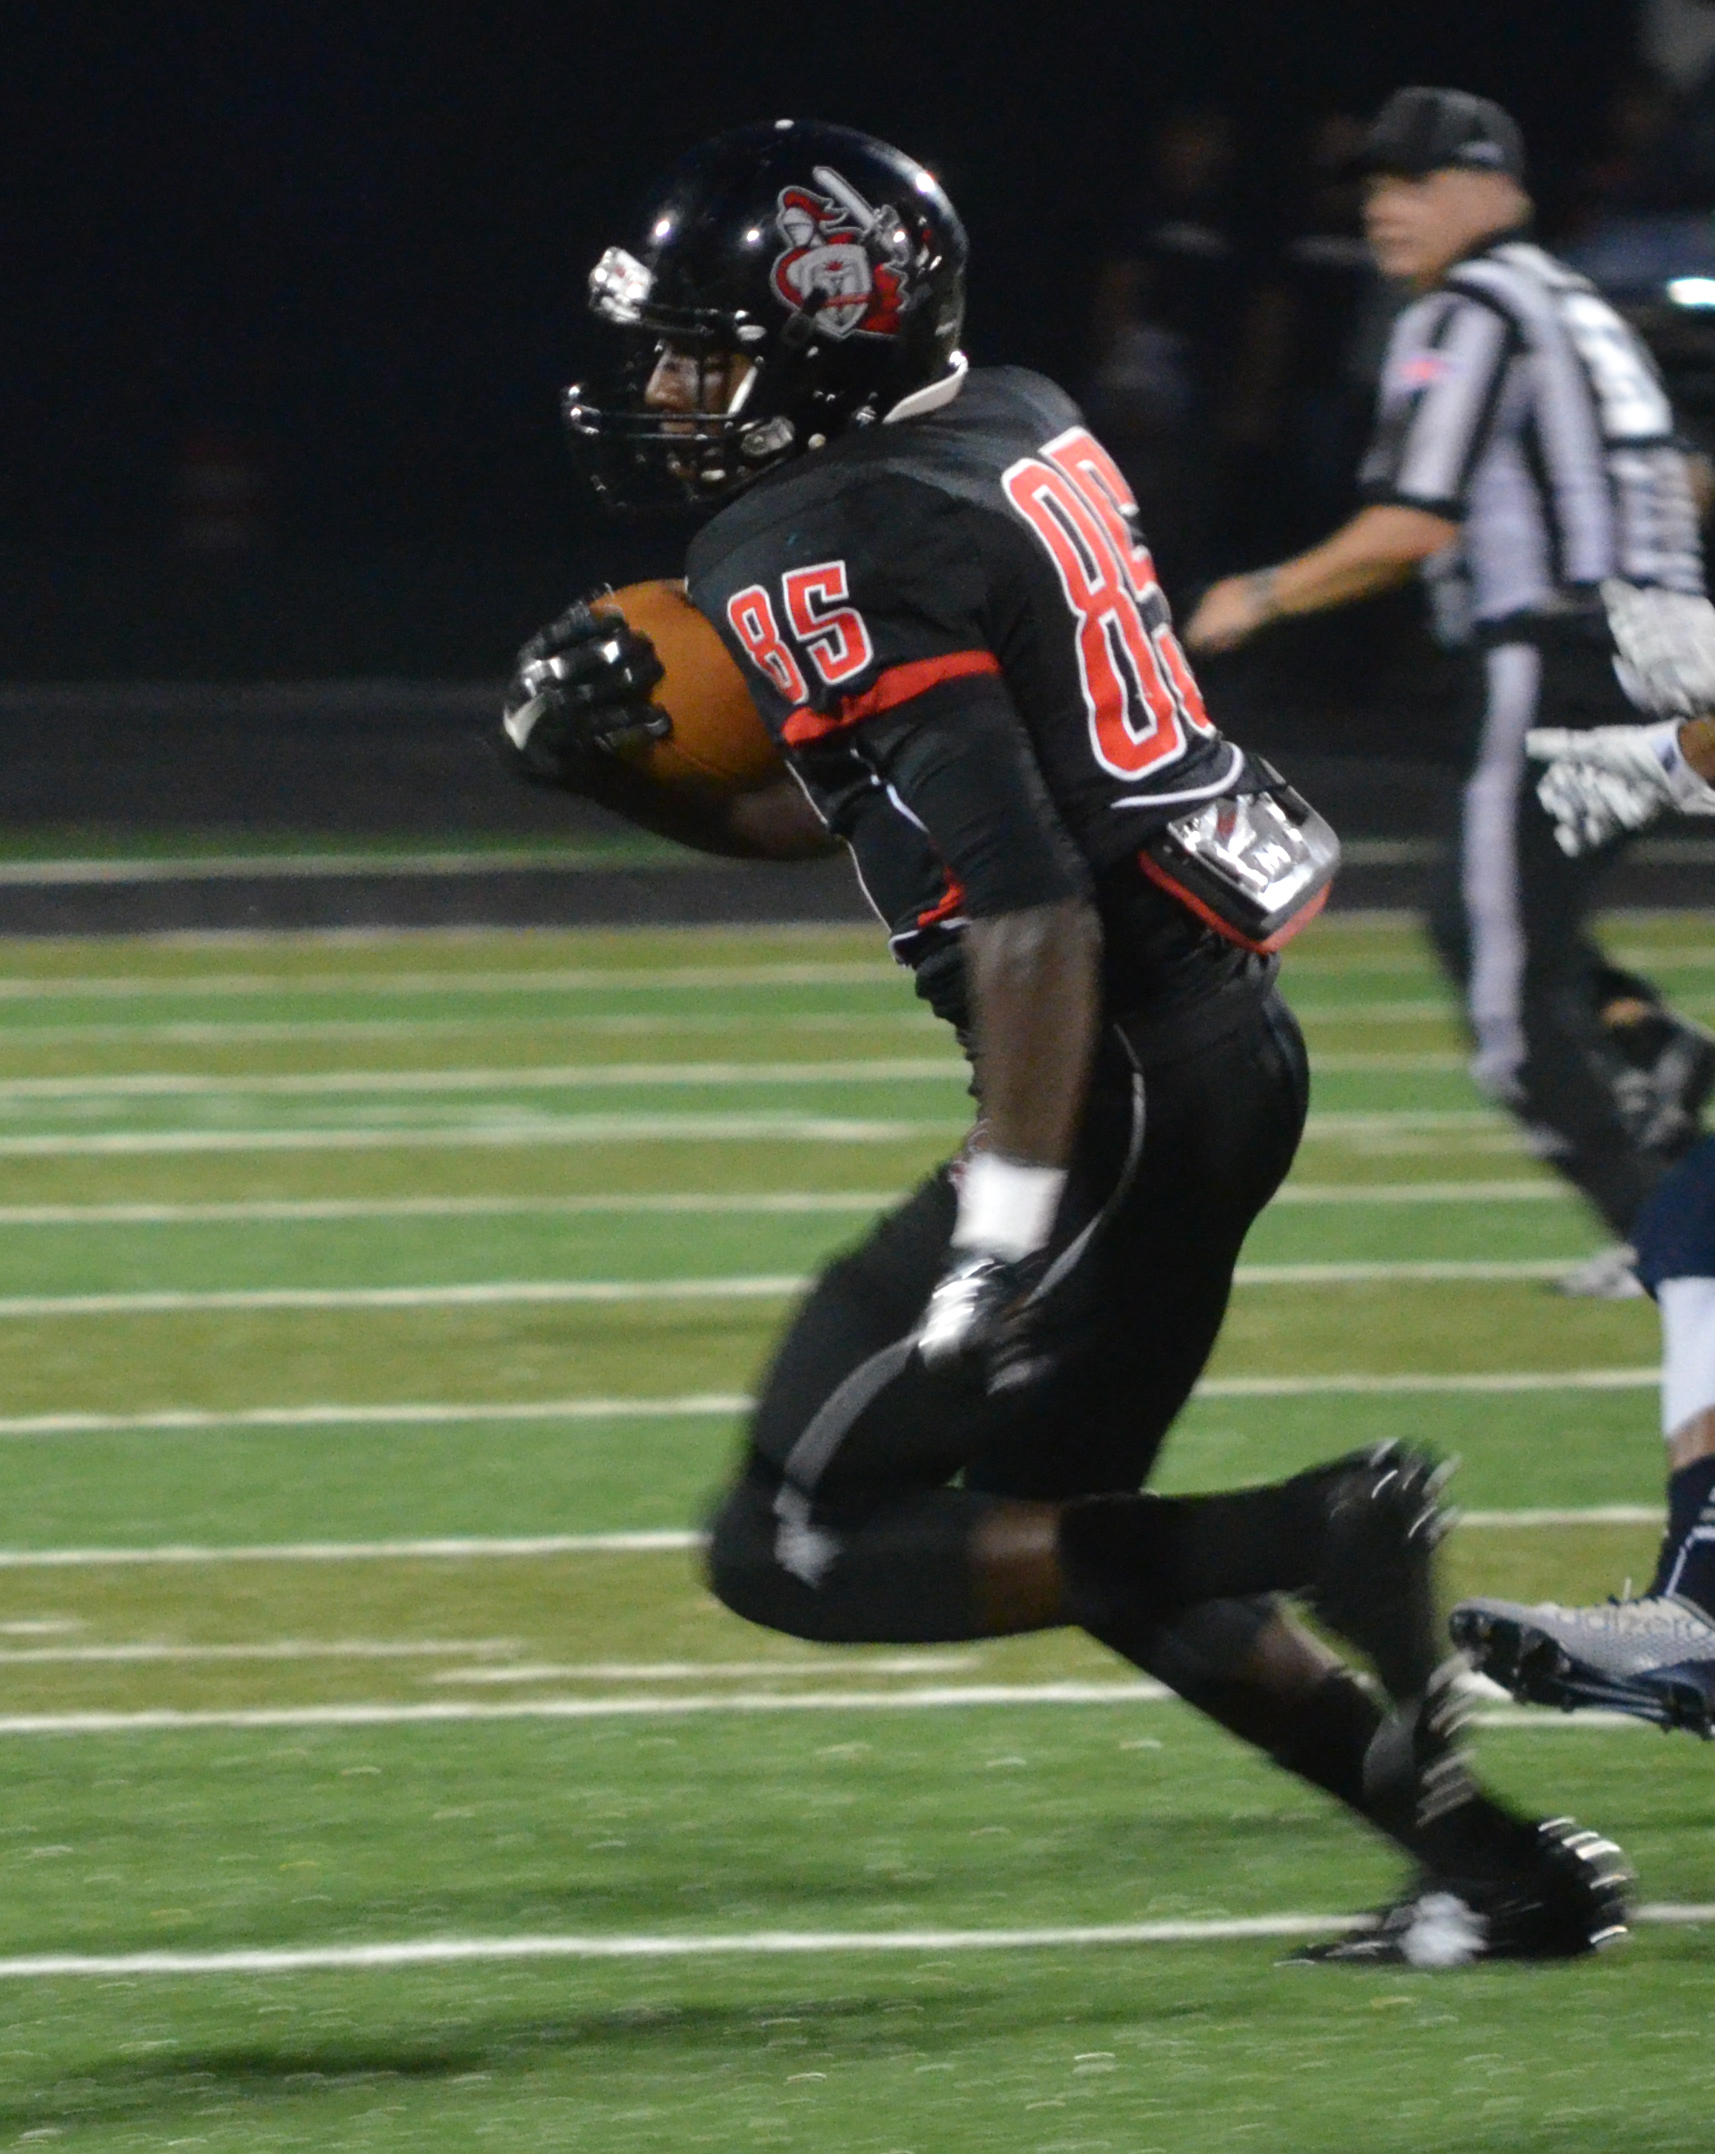 Wide Receiver, Robbie Brown, makes a run for the endzone while dodging the other team